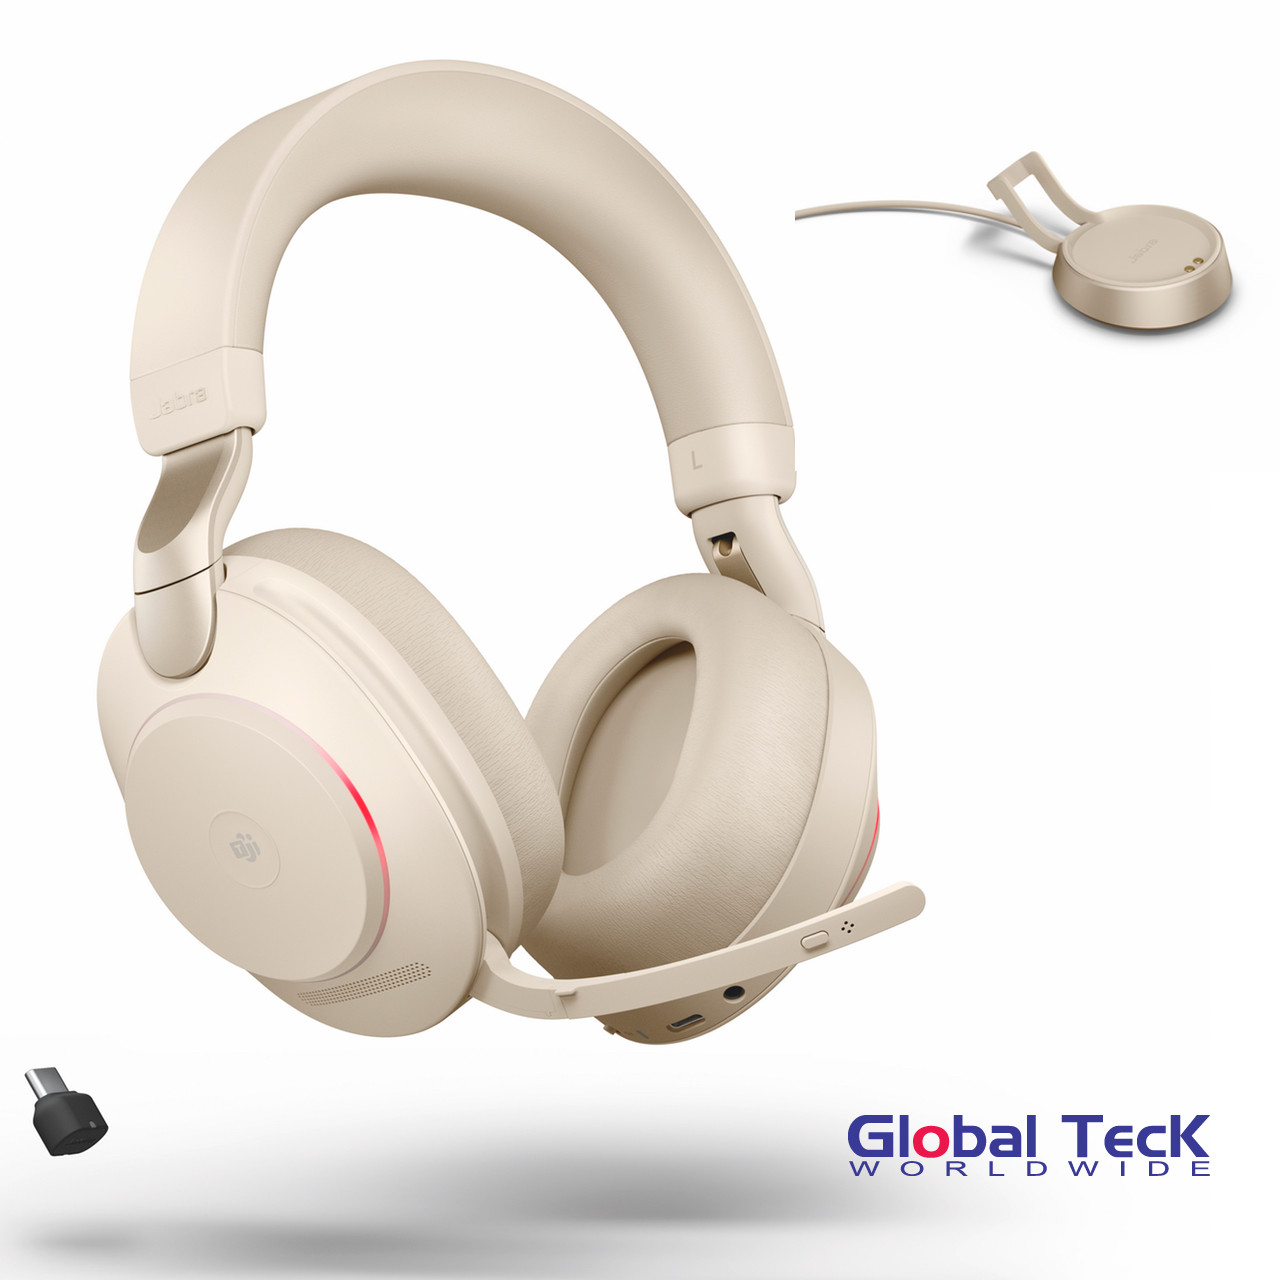 Jabra Evolve2 85 Wireless Stereo Headset Uc Beige Version Included Usb C Bluetooth Dongle And Charging Stand Compatible With Softphones Smartphones Tablets Pc Mac 28599 989 888